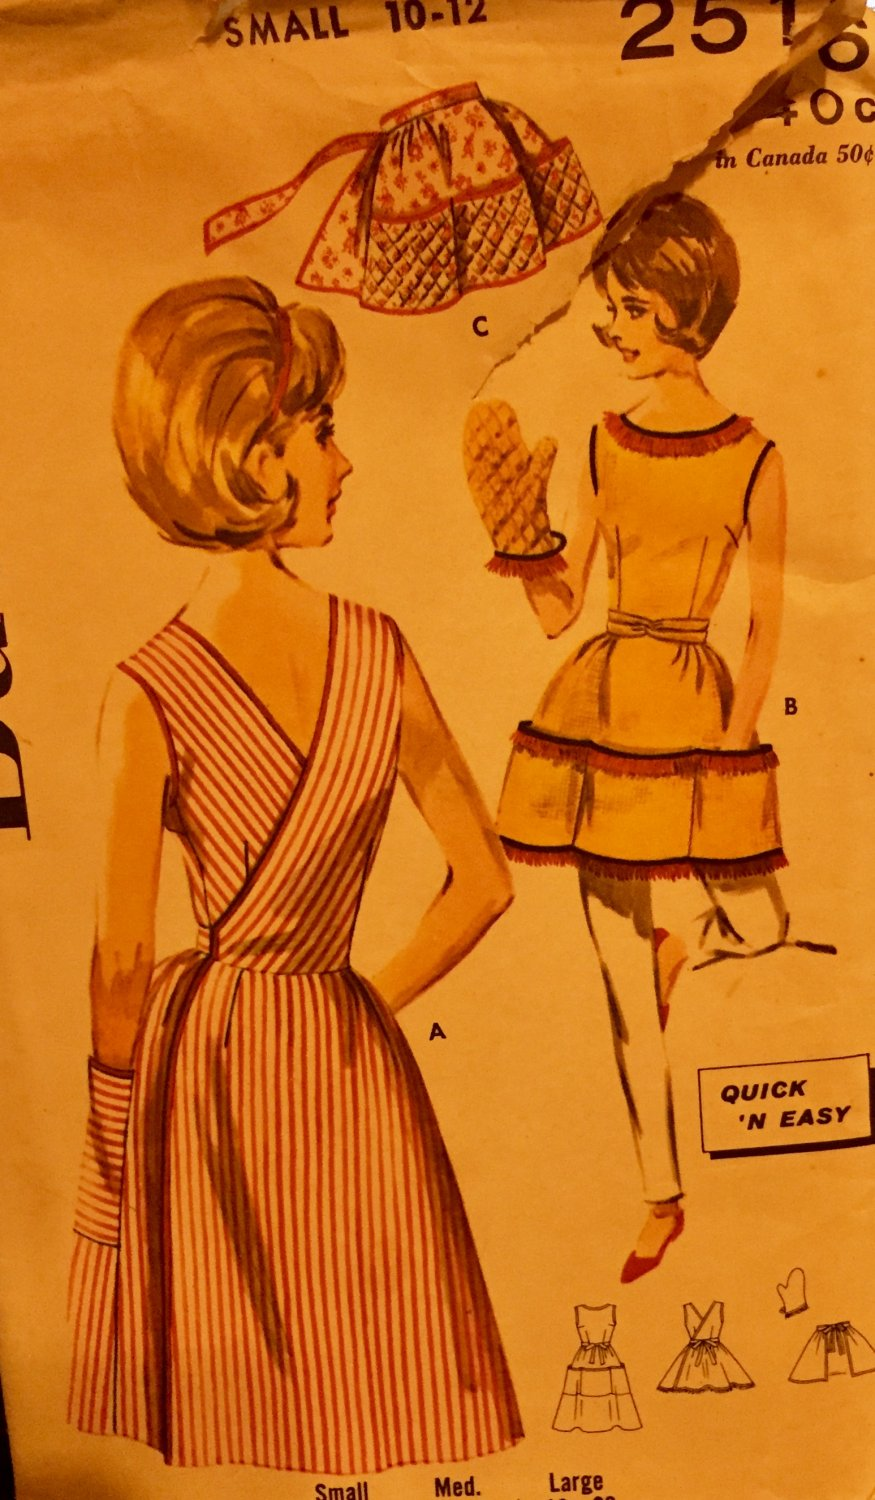 Butterick 2516 Quick n' Easy Apron Wrap Around Full Coverage Waist Tied Large Pockets Size 10-12